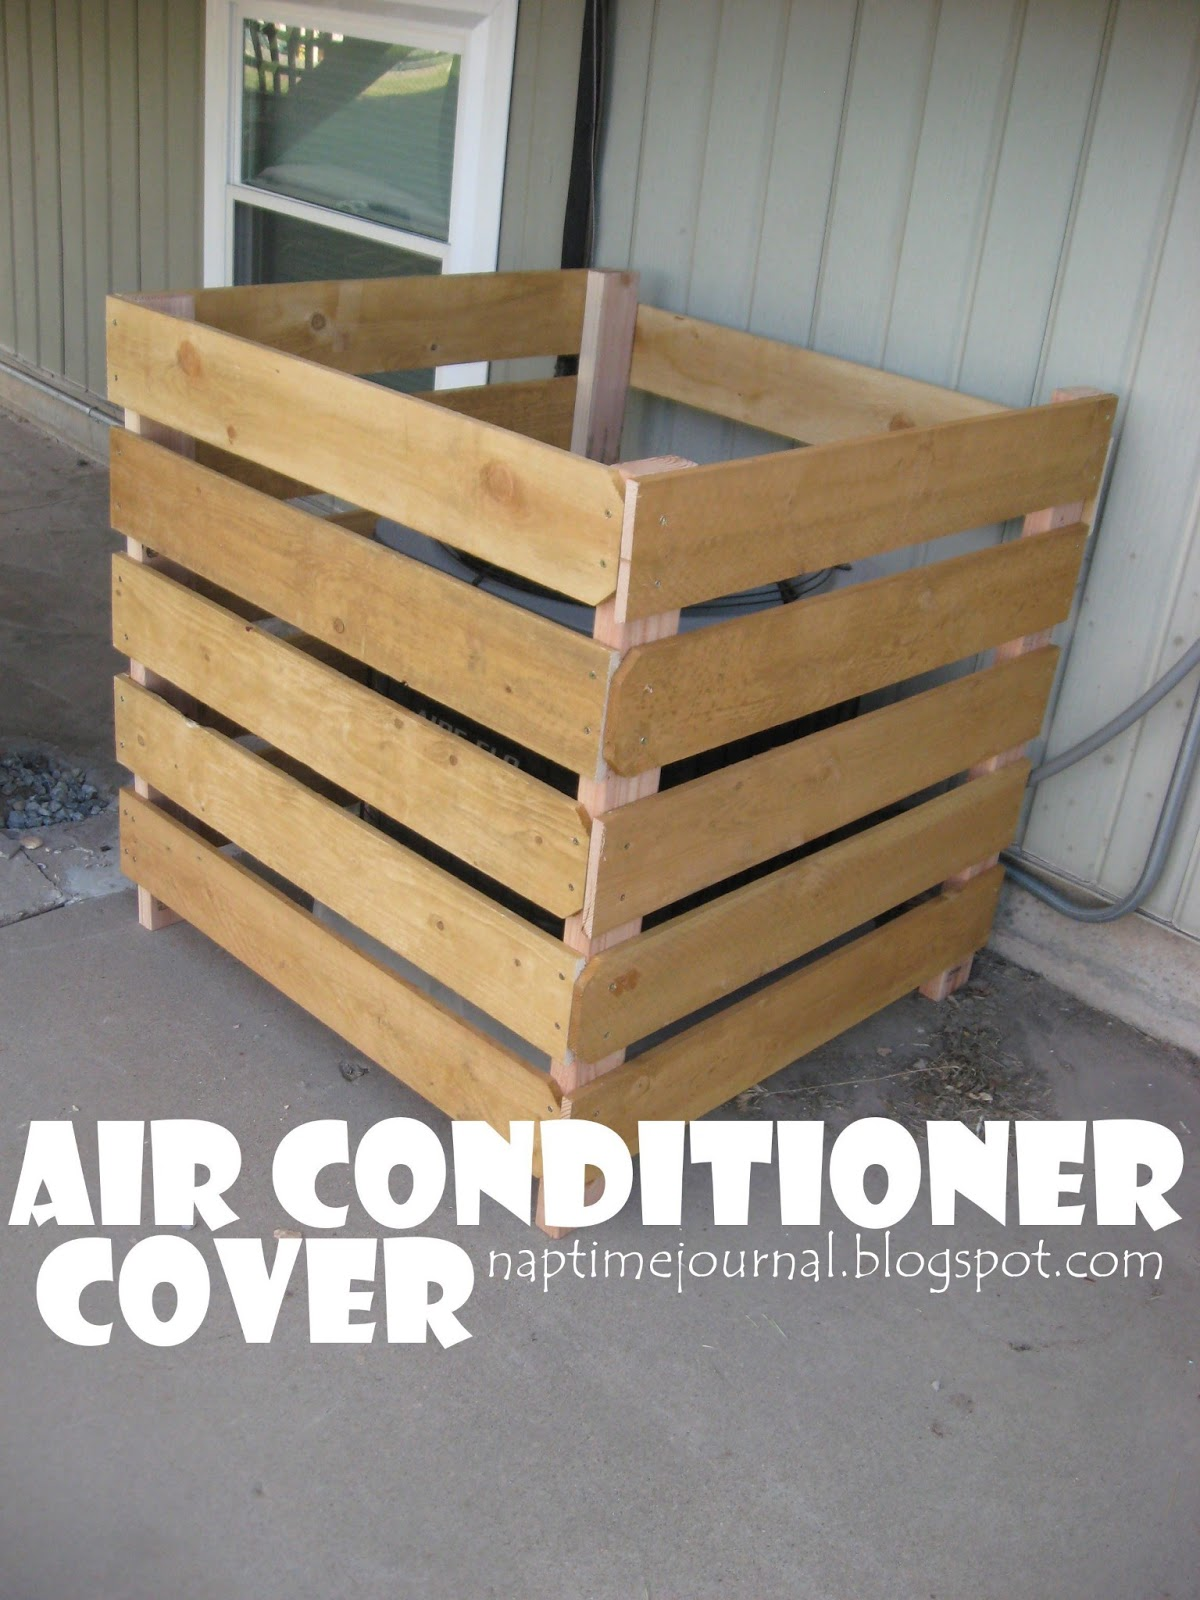 air conditioning covers outside. 1200 my husband made this awesome cover for our air conditioning unit it #967035 1600 covers outside a